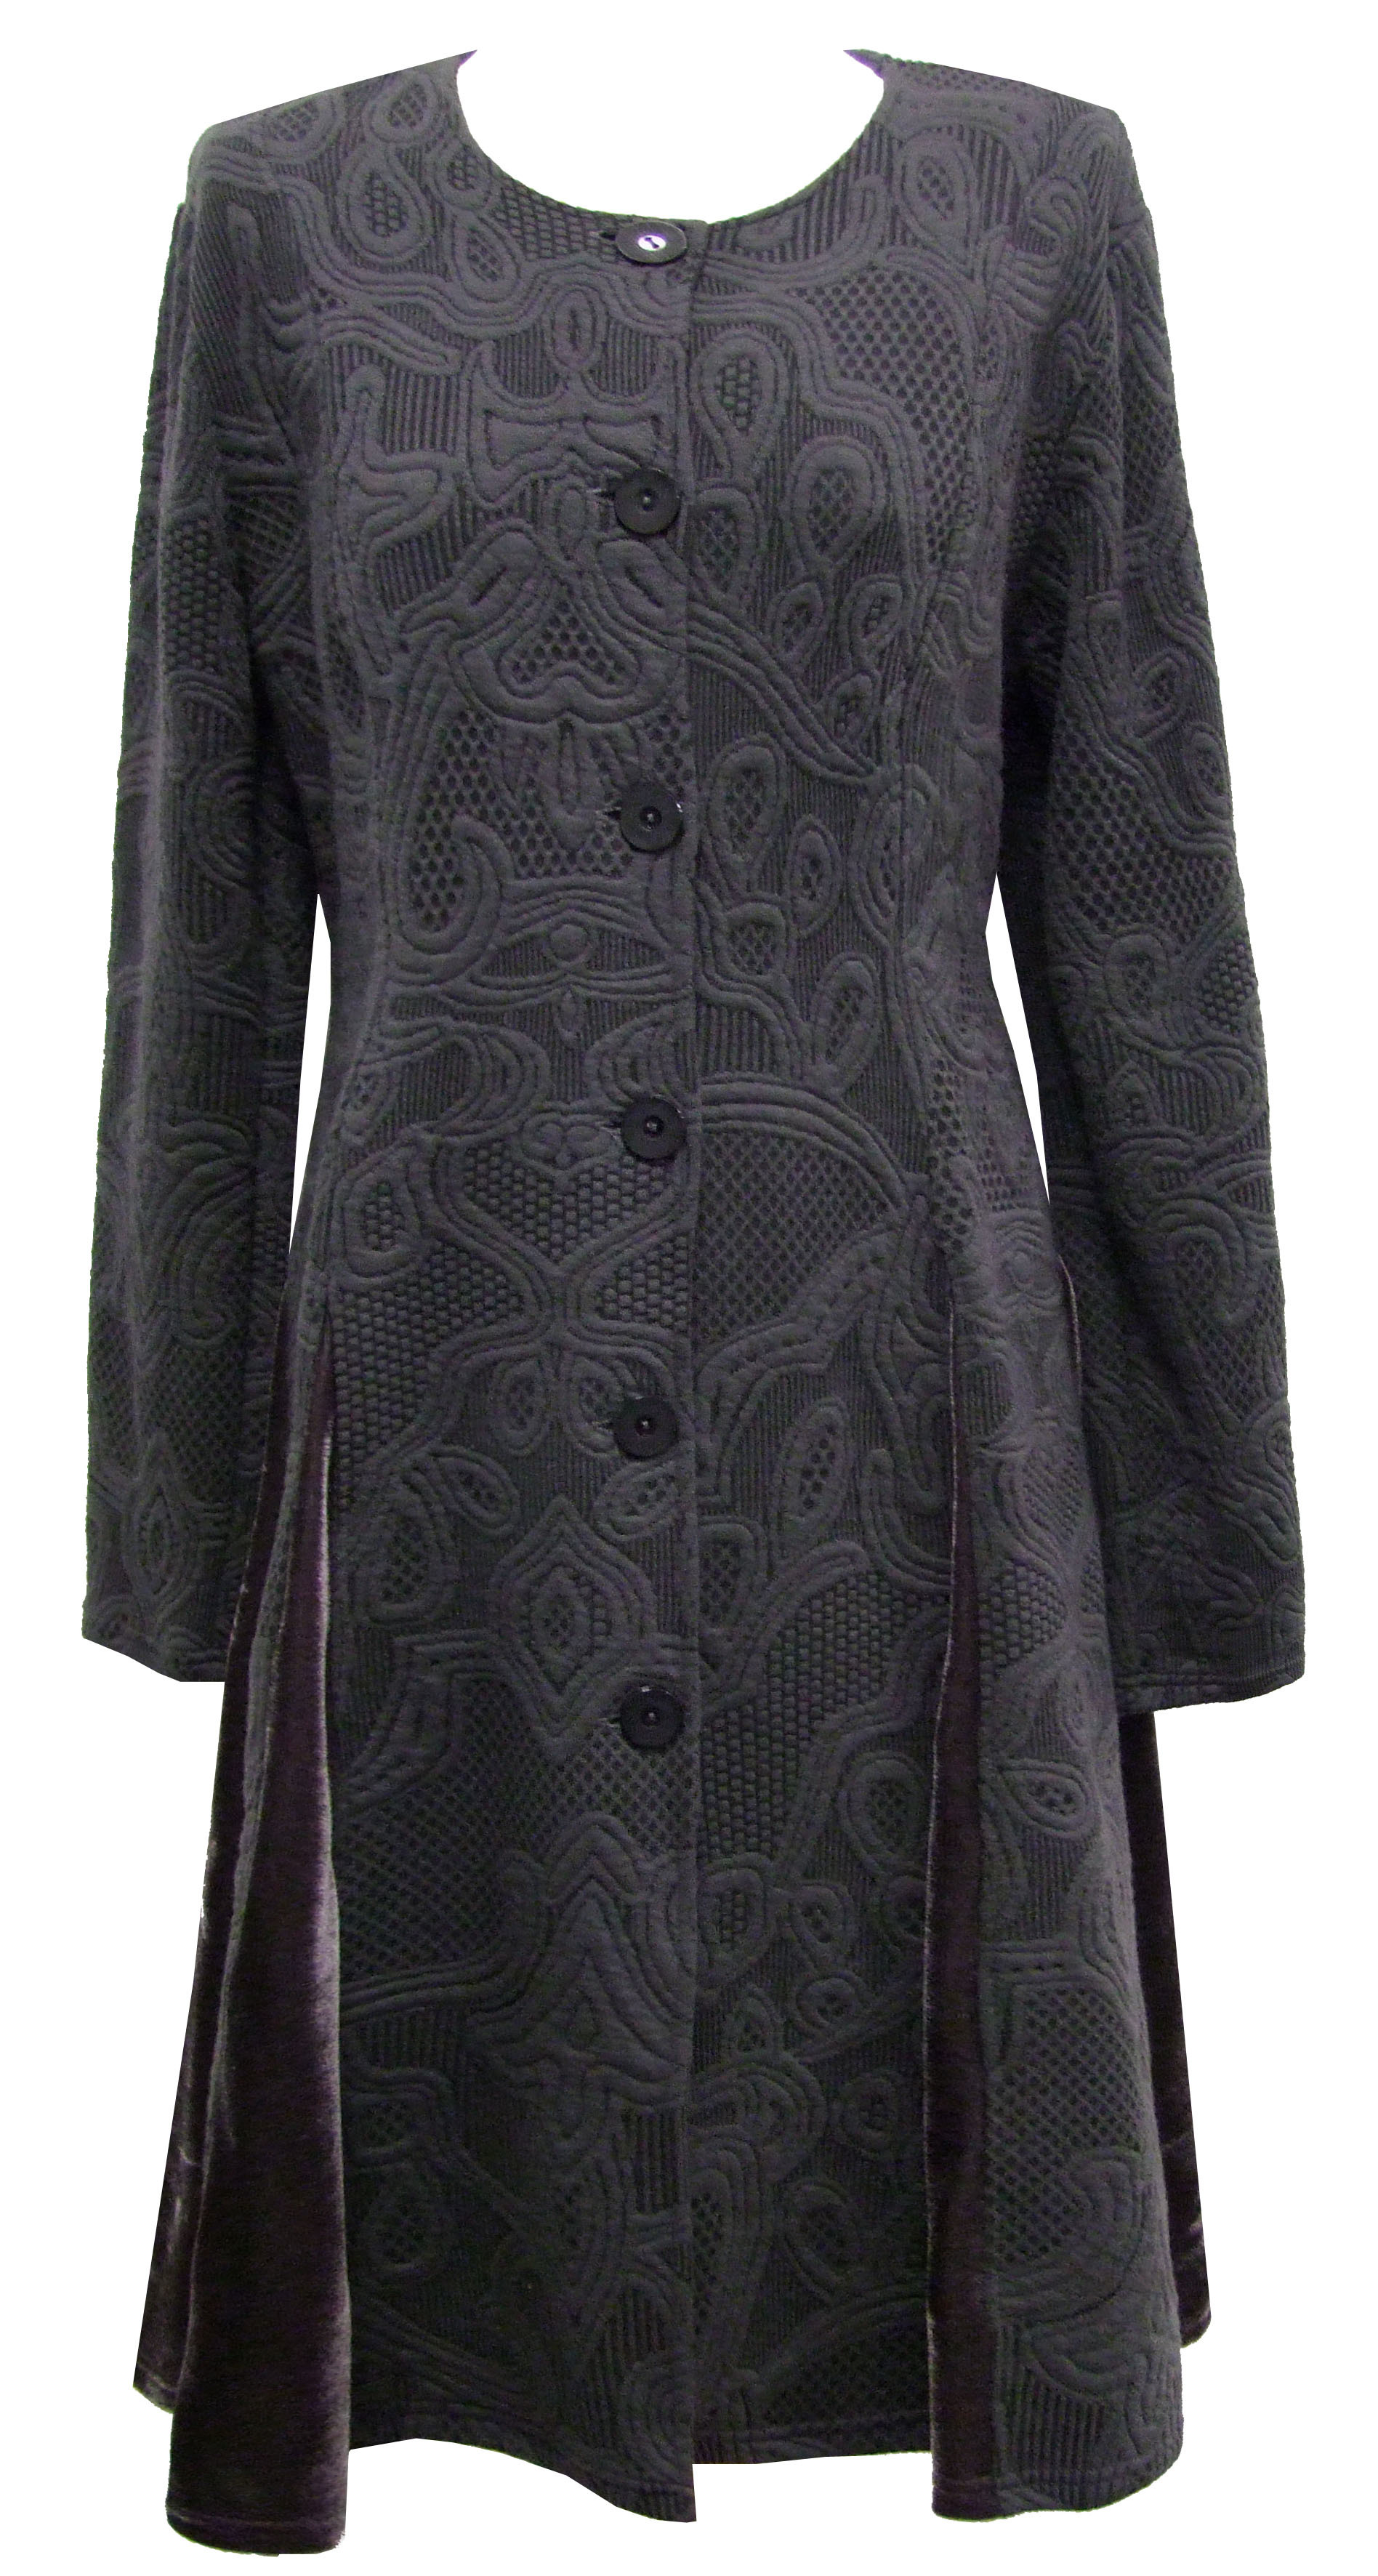 Maloka: White Diamond Jacquard Coat (Few Left, More Colors!)